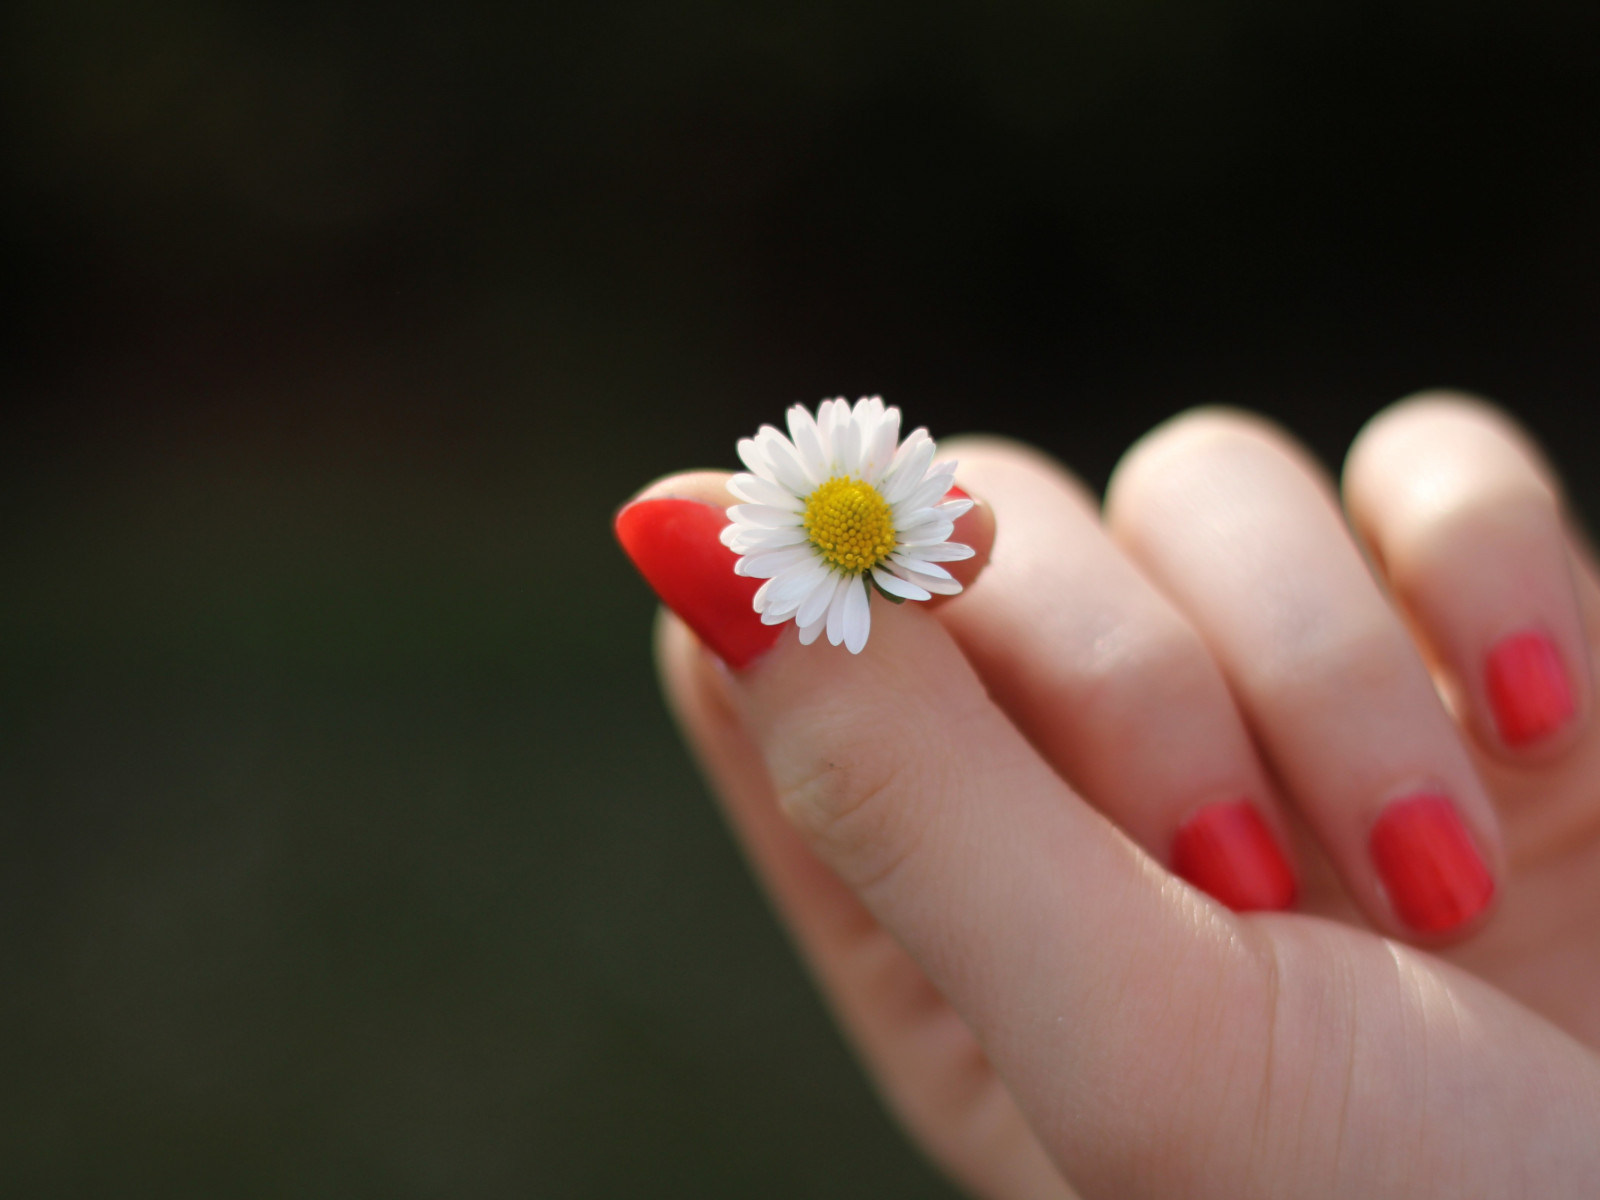 Girl with red nails and a daisy flower wallpaper 1600x1200